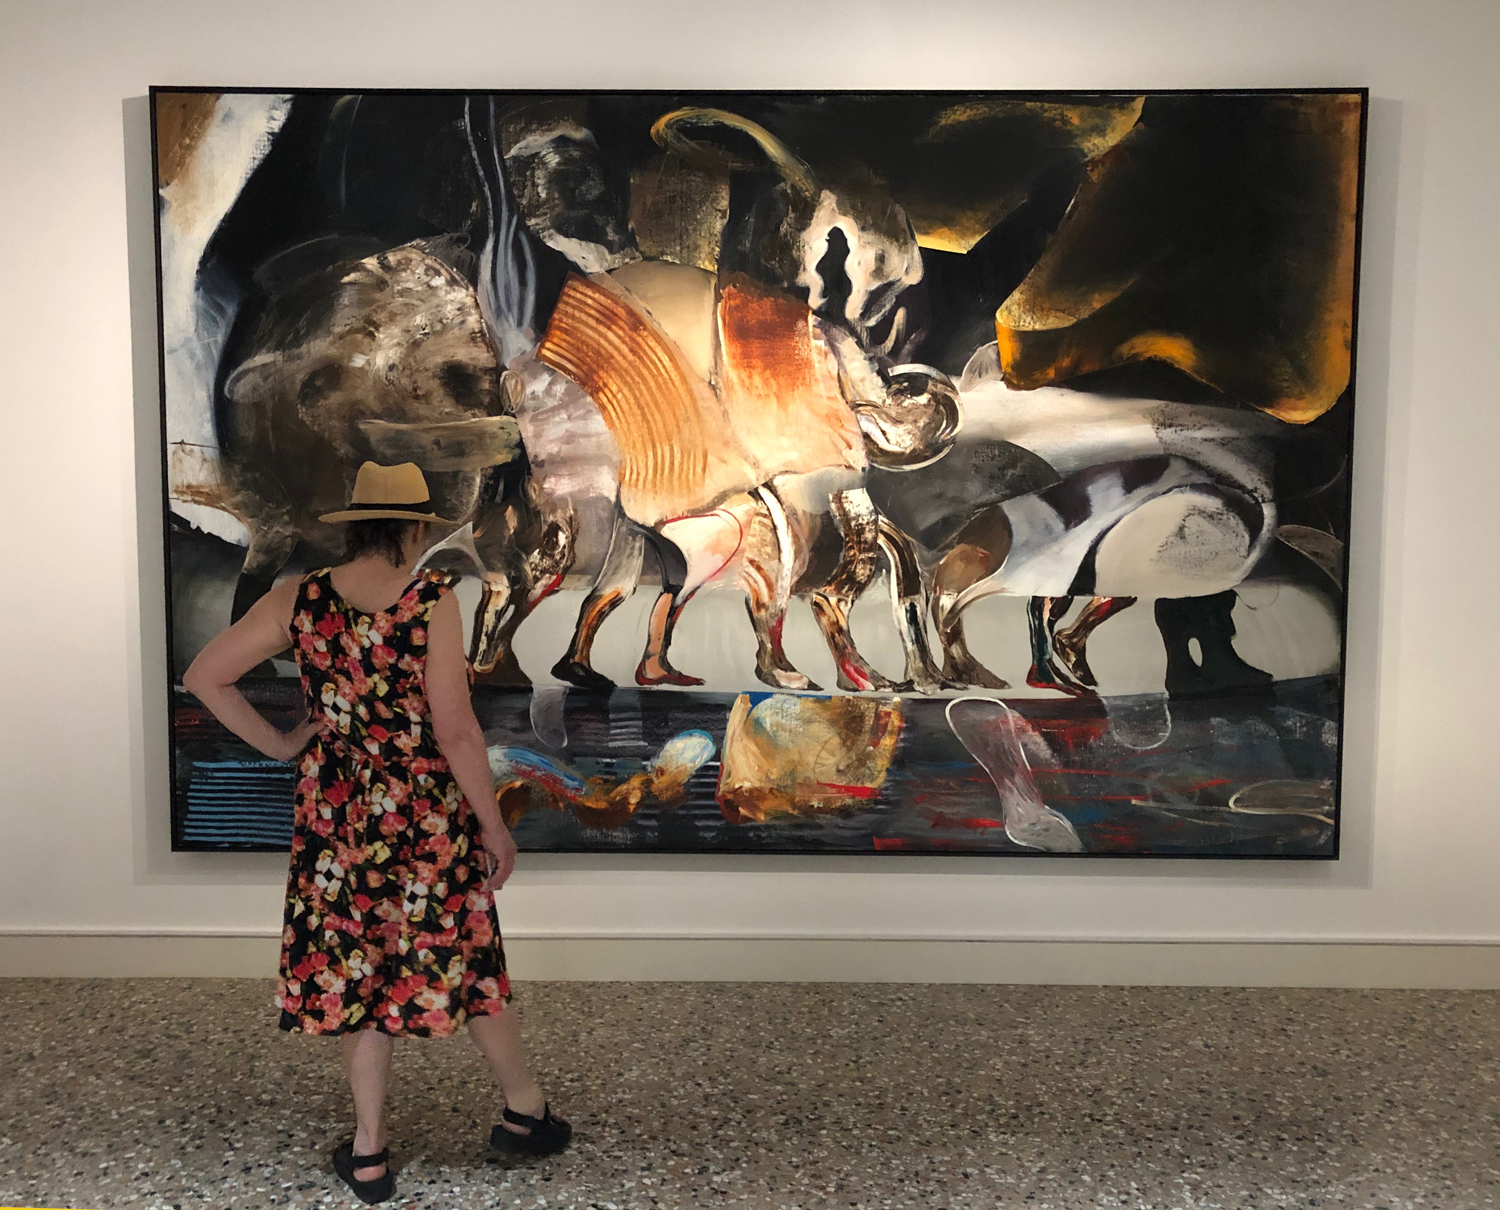 Elizabeth, at Pallazo Cini in Venice, taking in the exquisite painting  Raft  (2019) by contemporary artist  Adrian Ghenie .